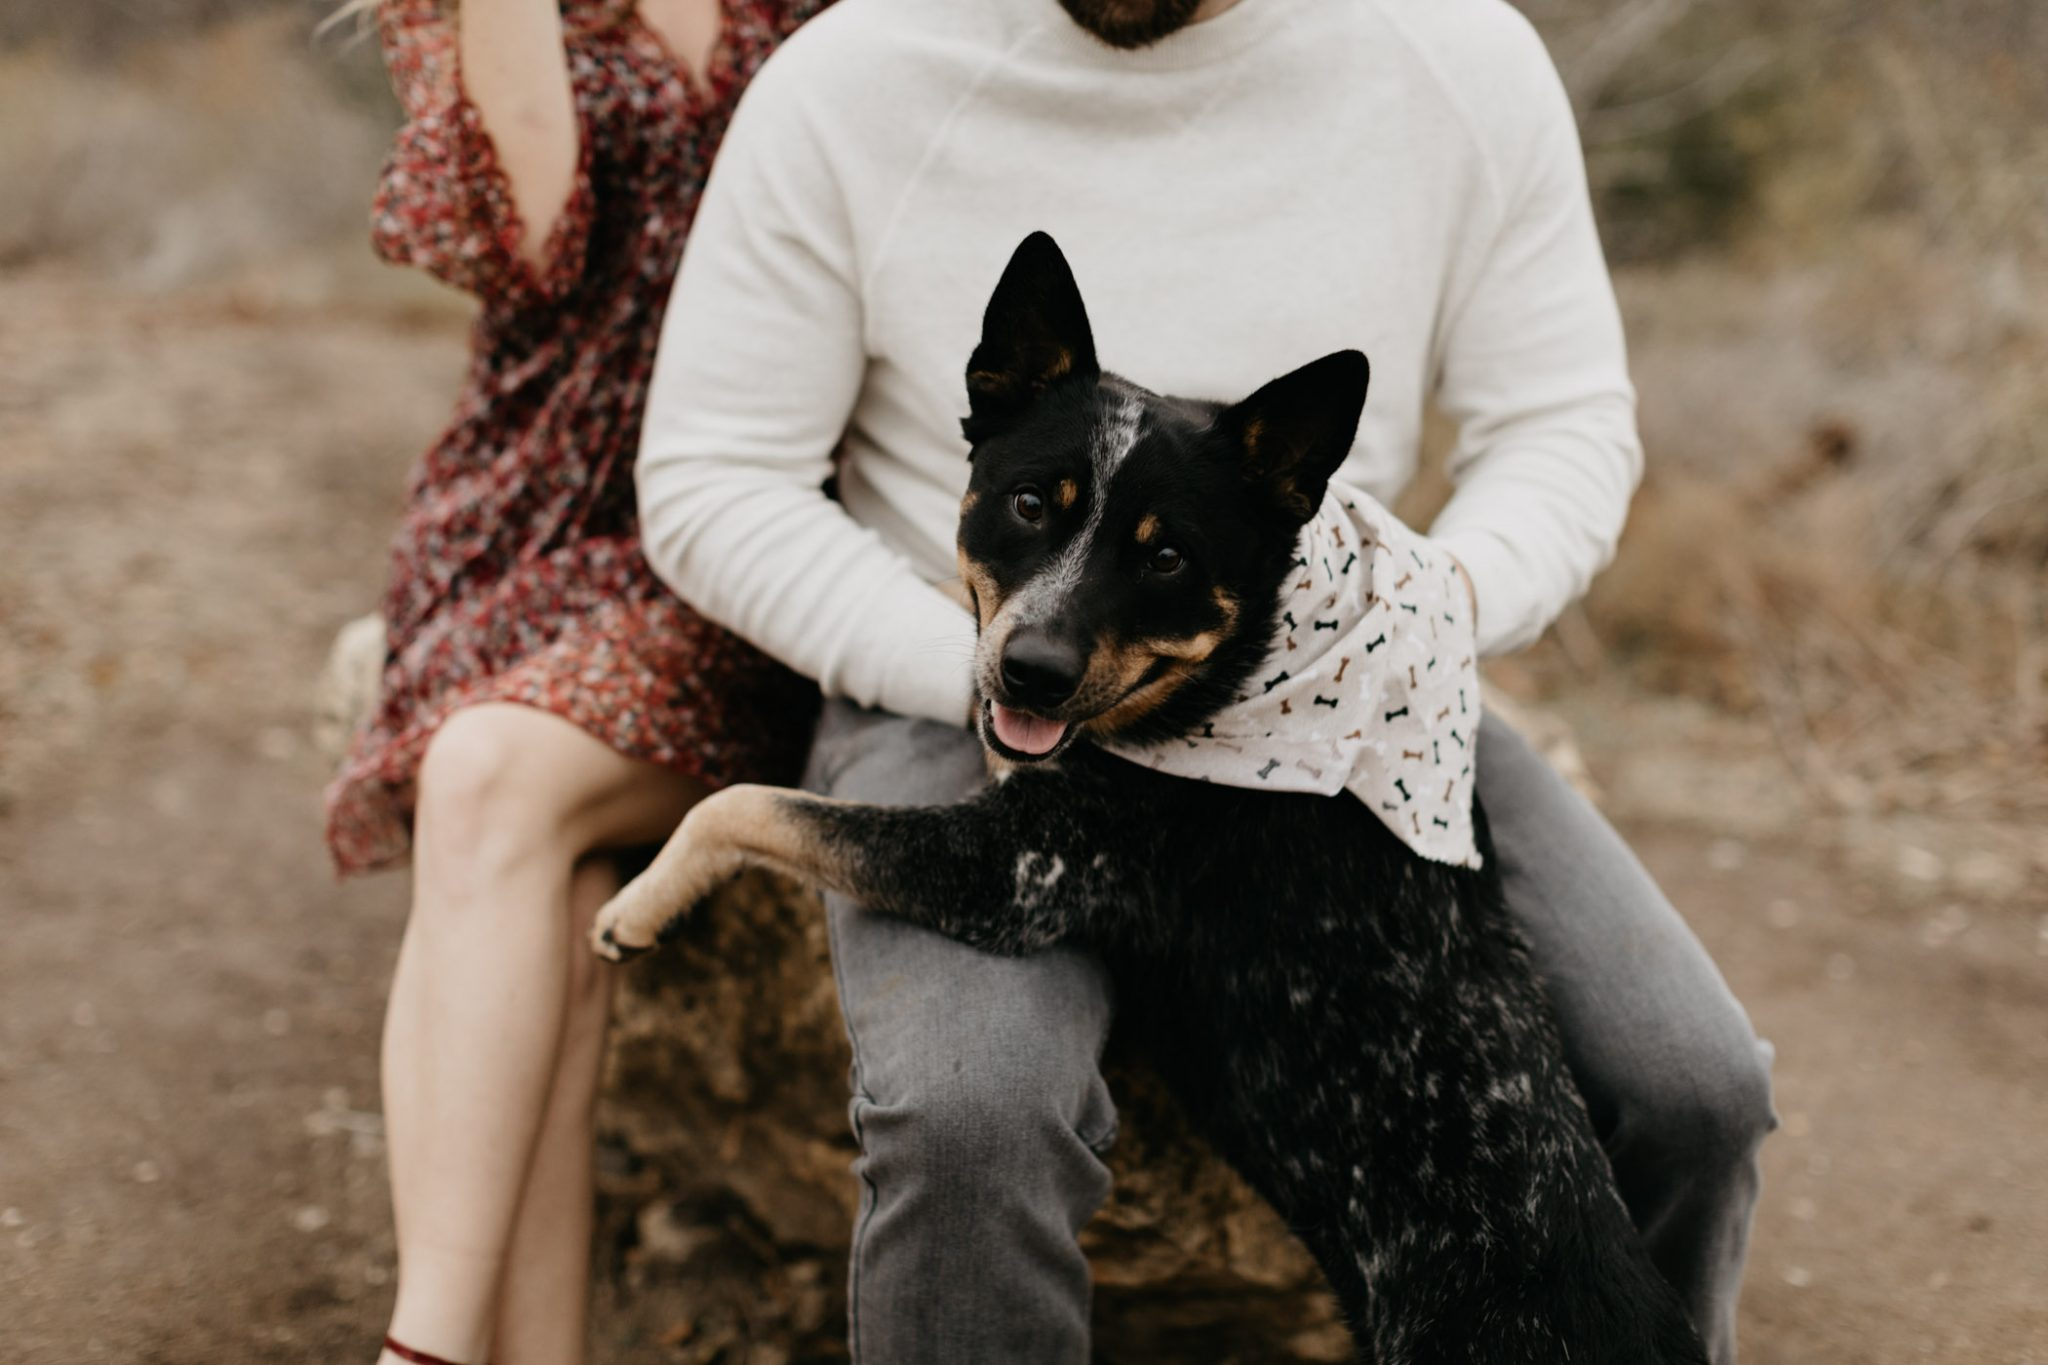 Dog at engagement session being cute